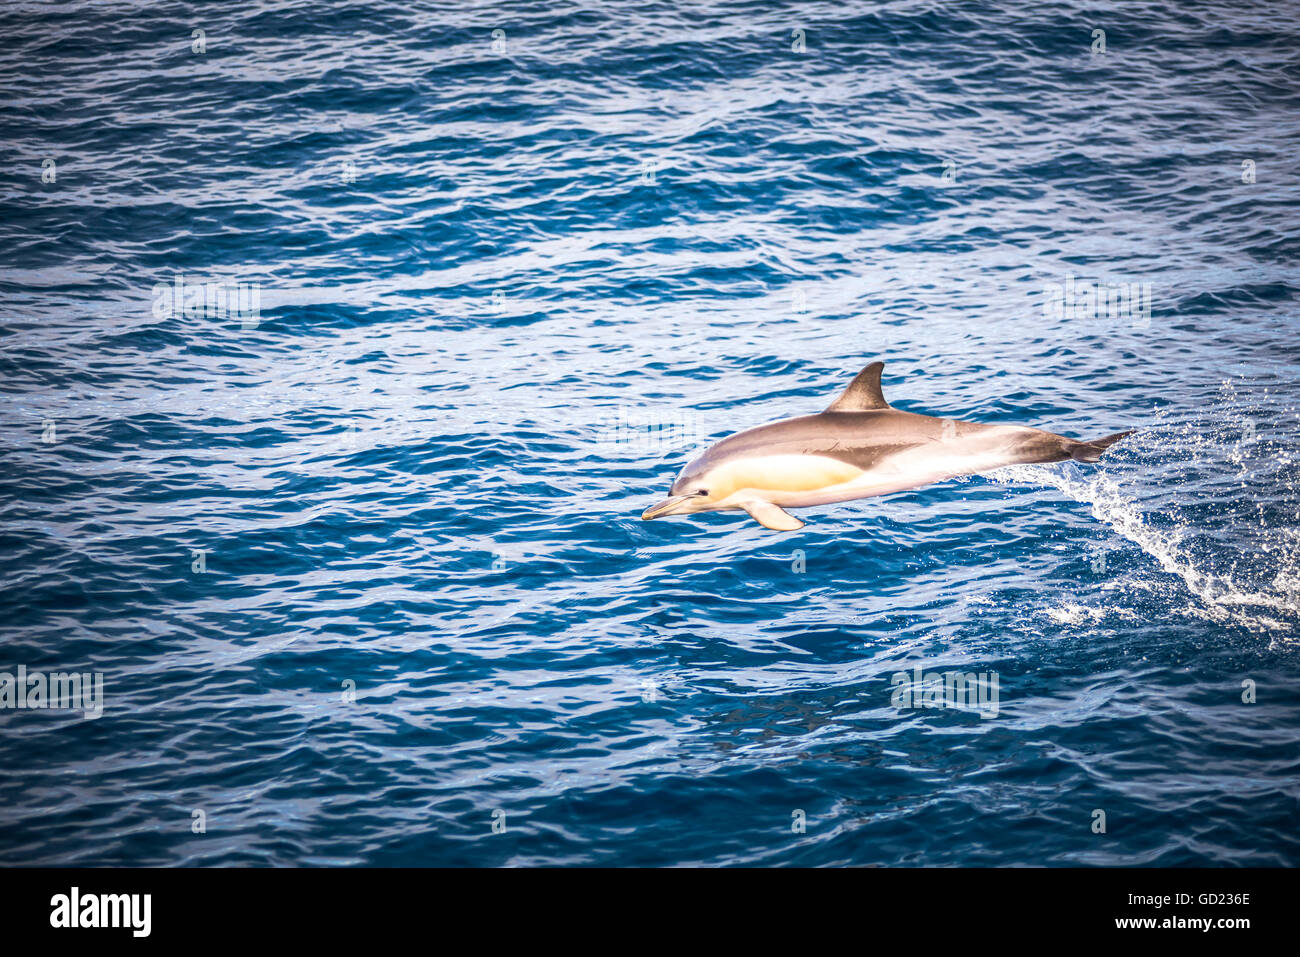 Dolphins seen near Whakatane and Tauranga in the Bay of Plenty, North Island, New Zealand, Pacific - Stock Image